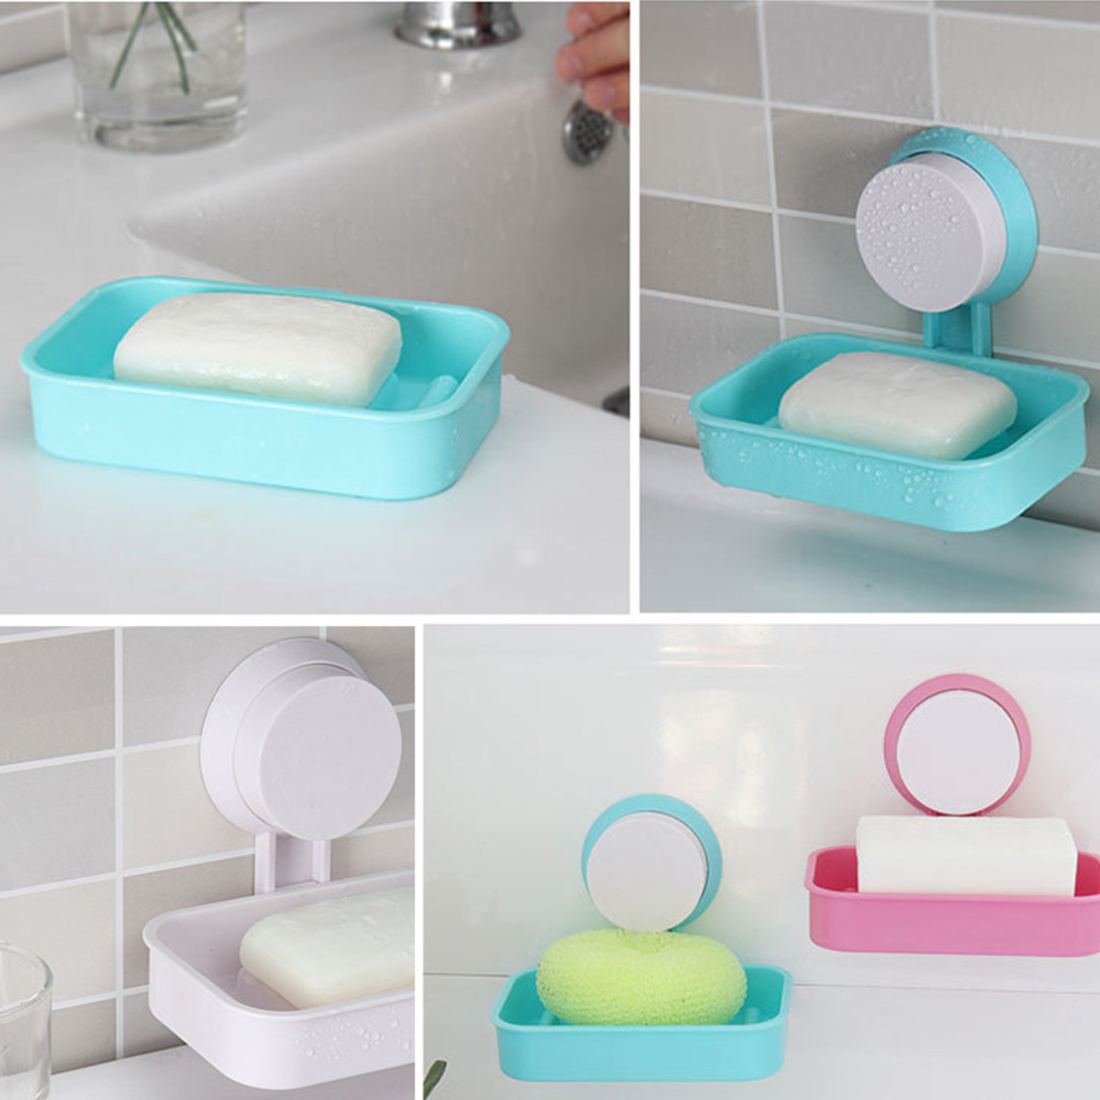 How useful is the soap